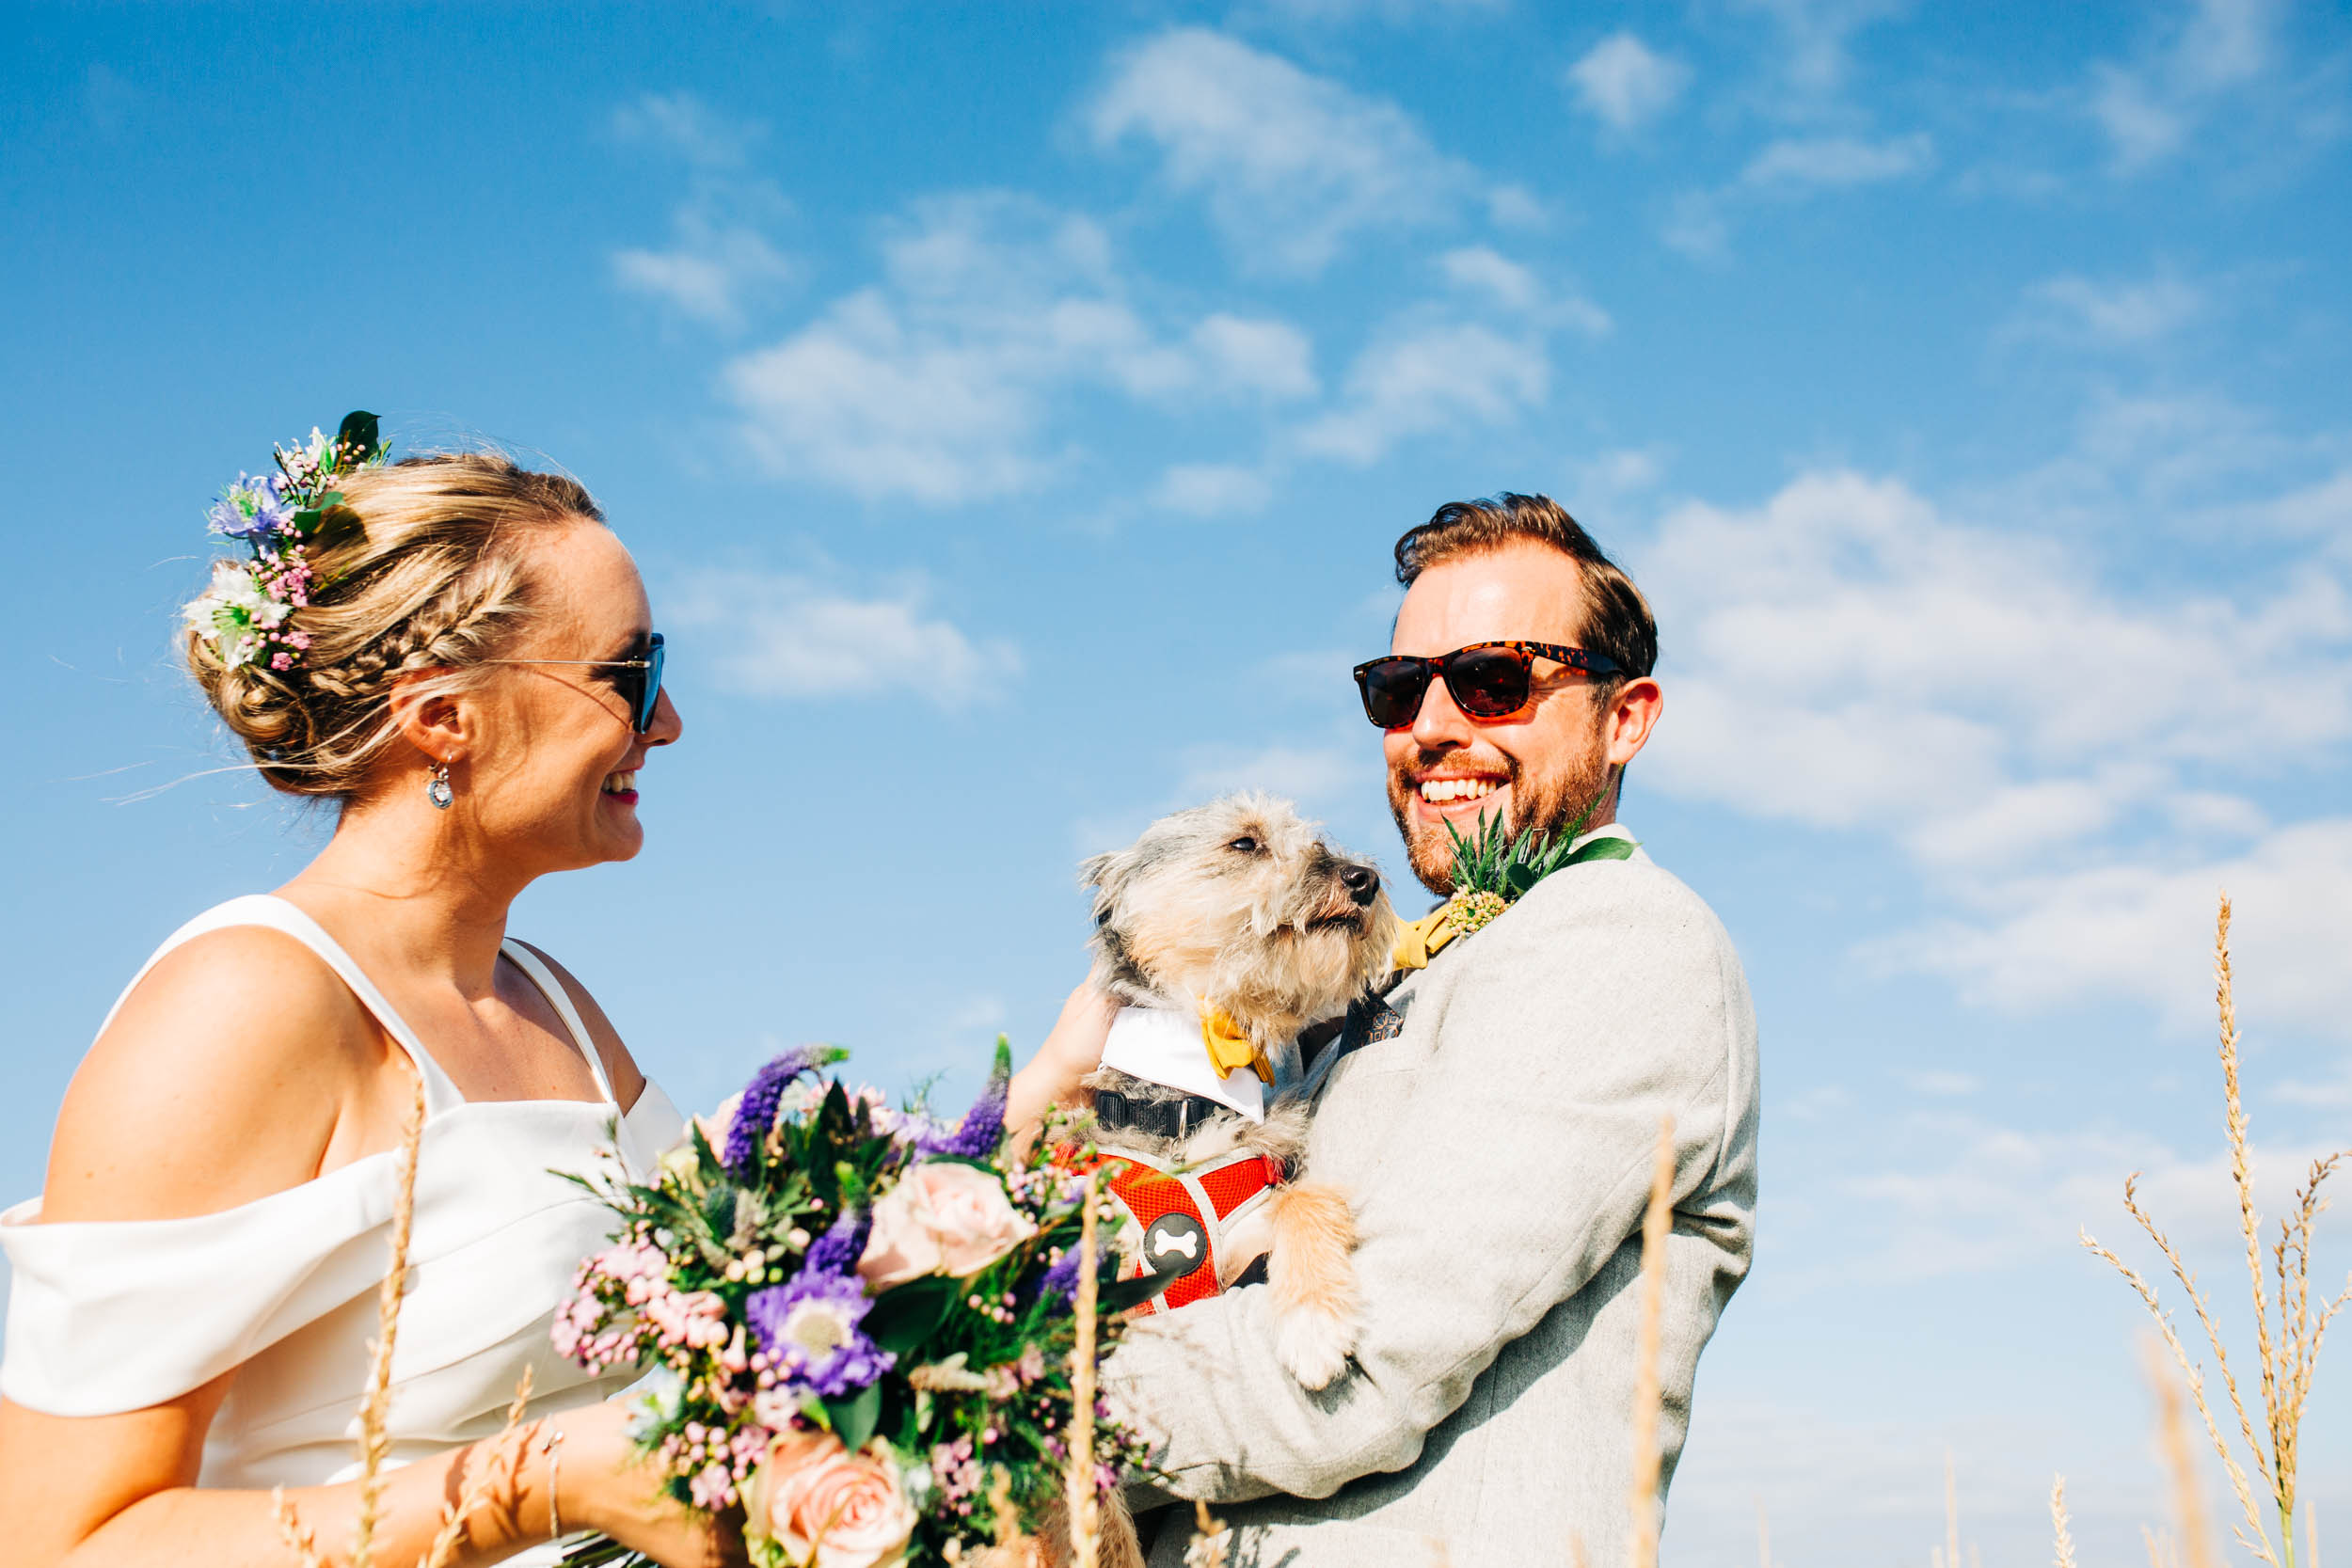 Alex_Sedgmond_Photography-MonkNashLighthouse-WeddingPhotography-Penny&Mike-223.jpg